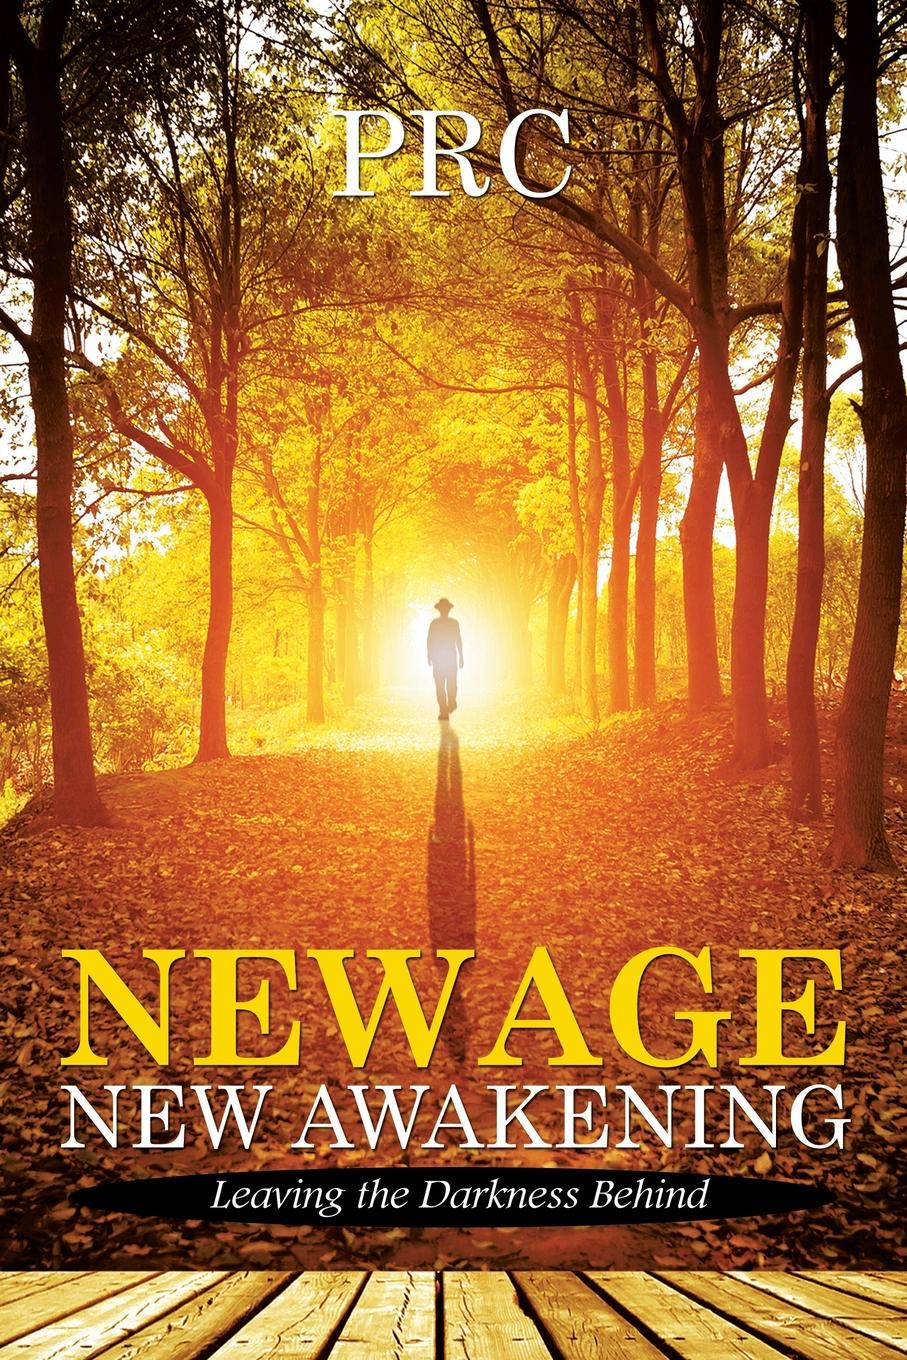 PRC New Age Awakening. Leaving the Darkness Behind